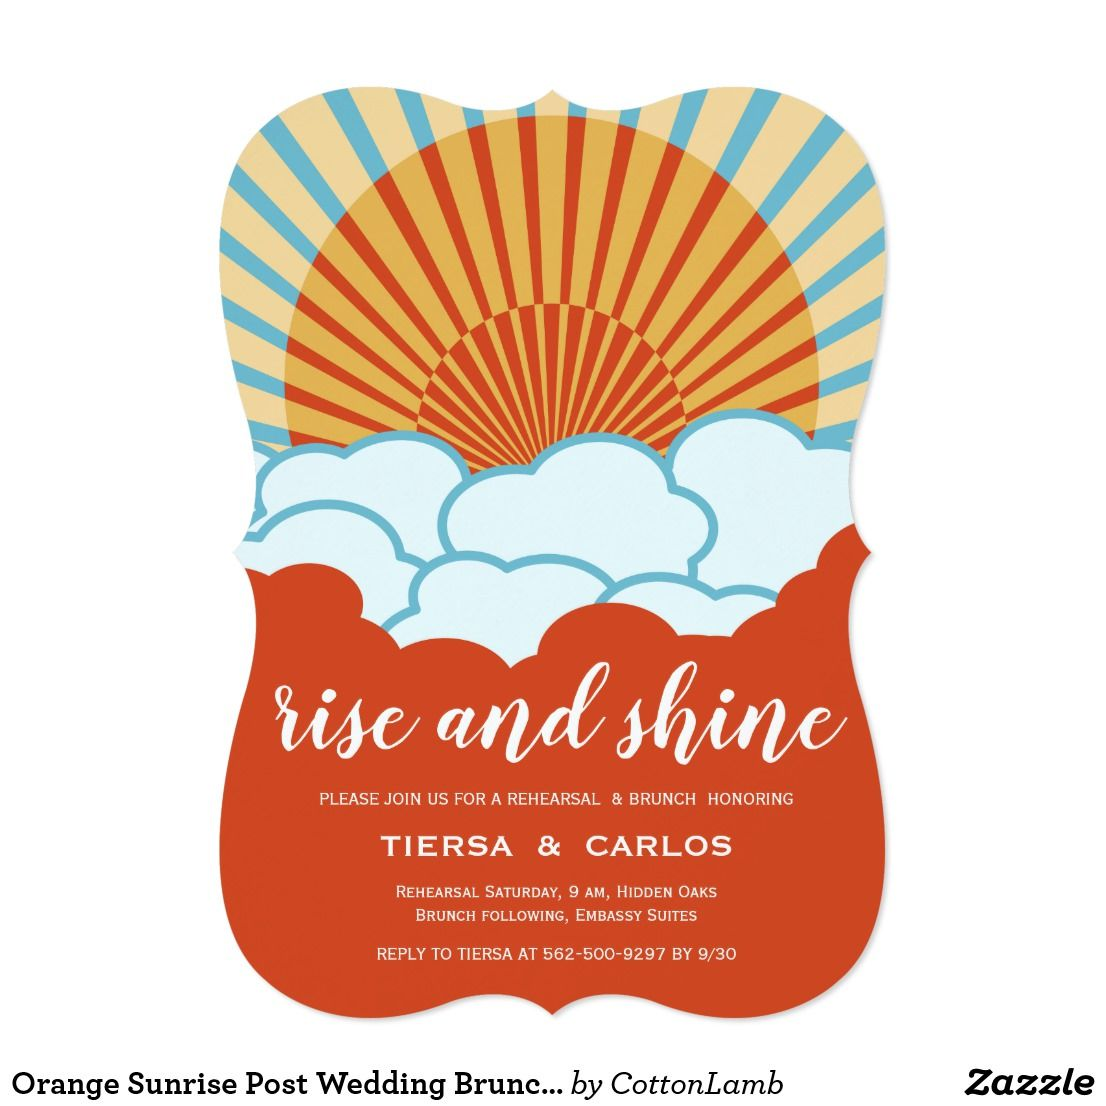 Orange Sunrise Post Wedding Brunch Invitation | Pinterest